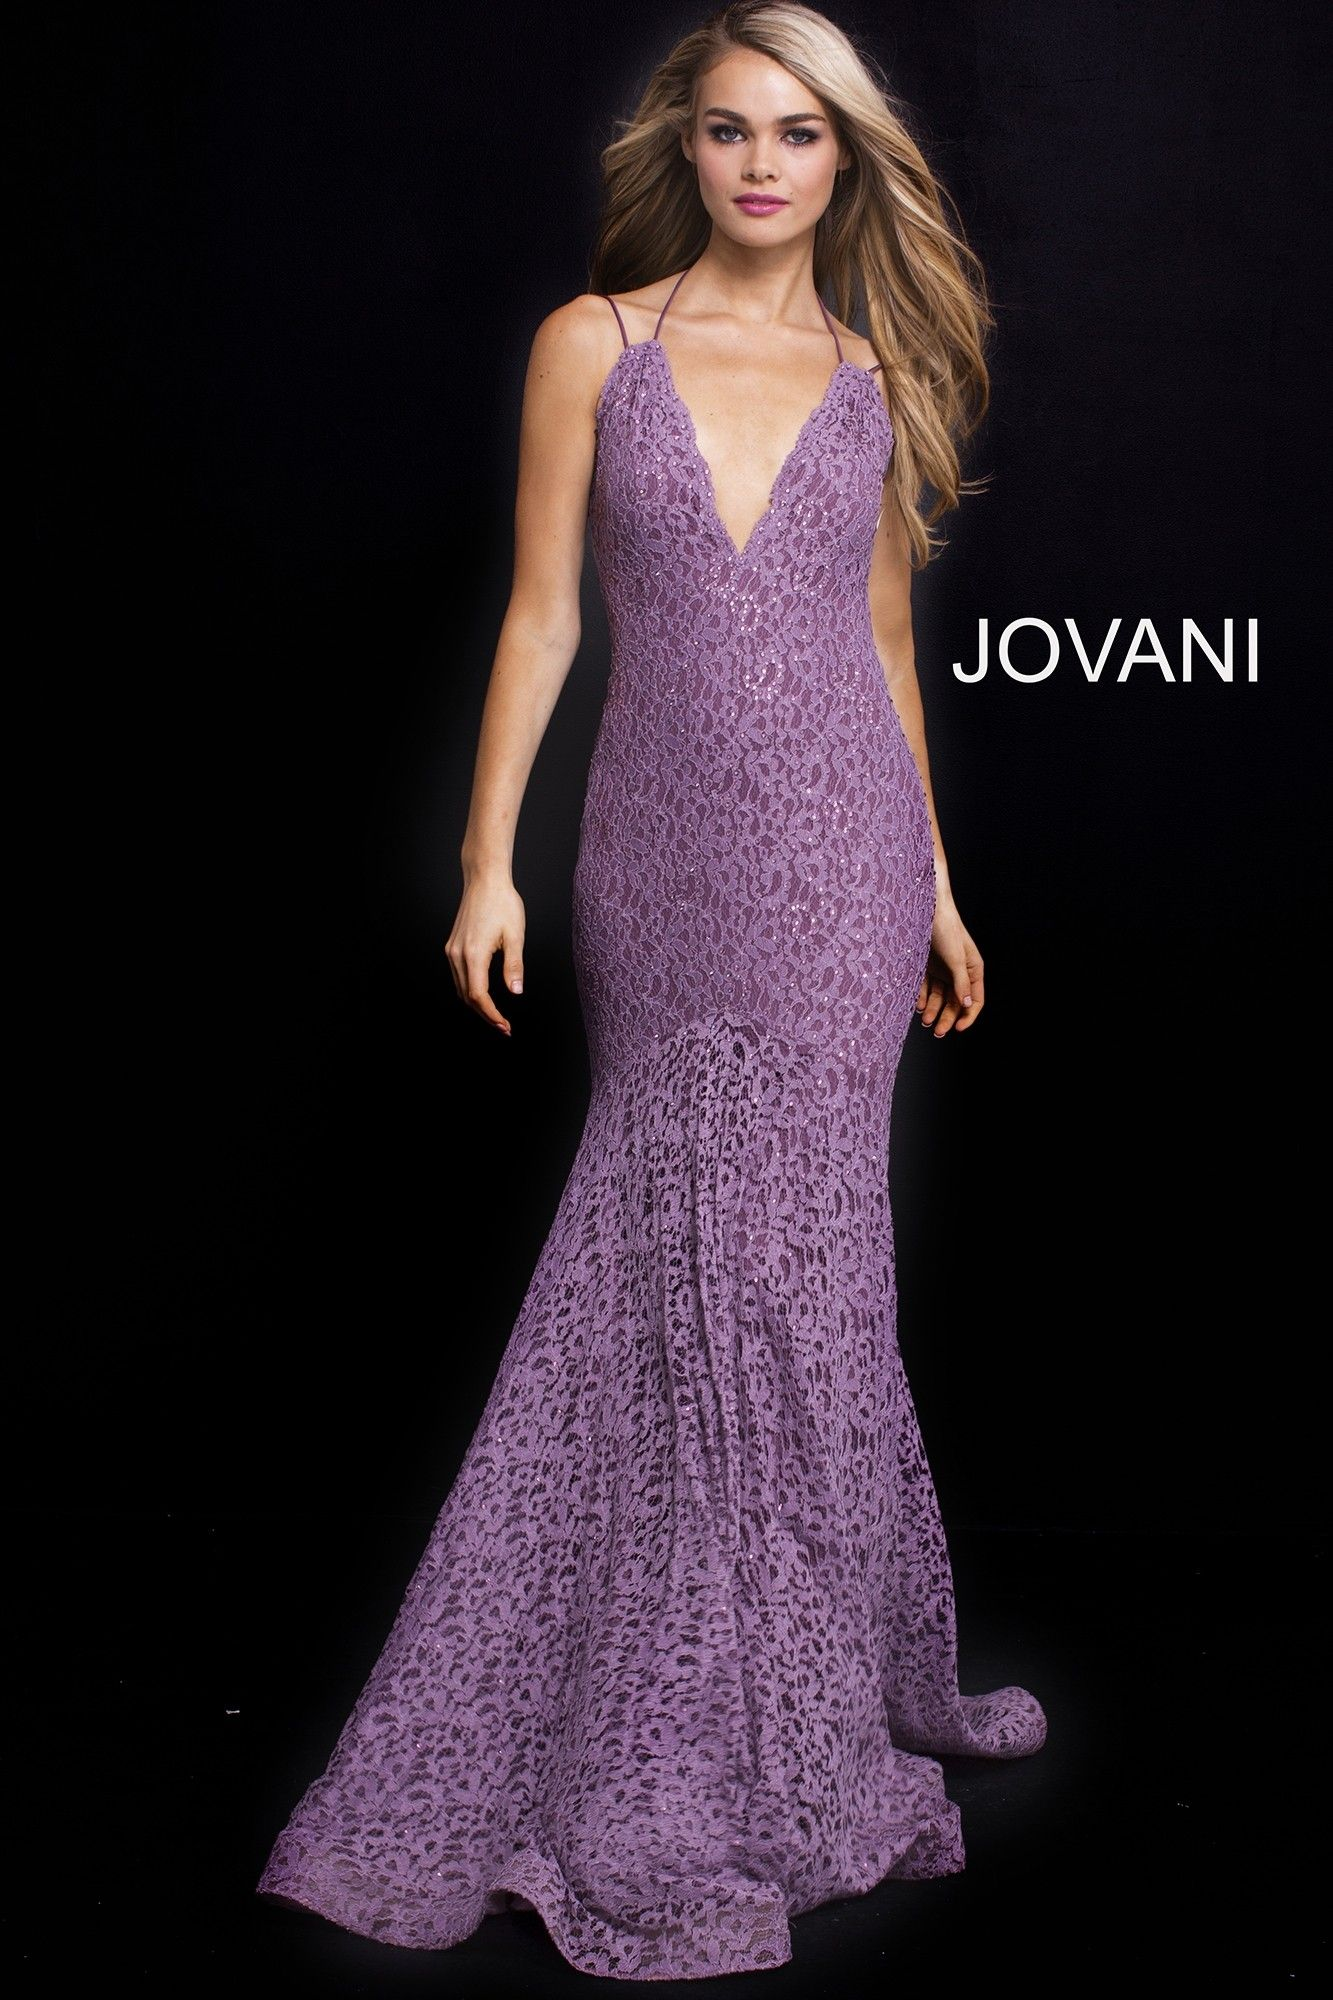 Jovani 58662 Deep V-Neck Lace Mermaid Gown